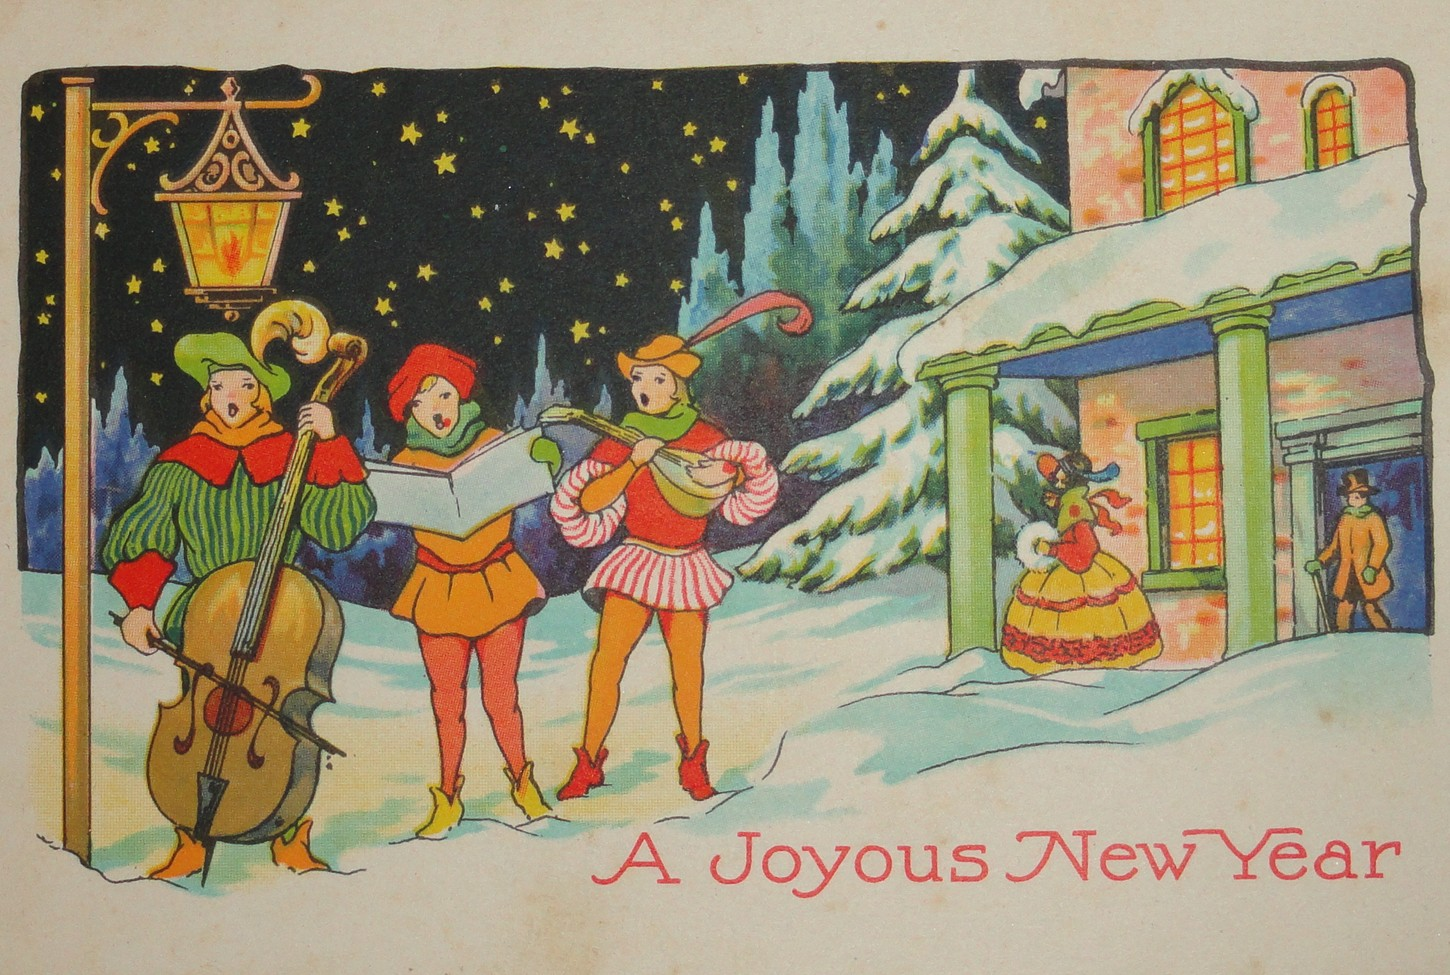 Free Clipart N Images  Free New Year Vintage Image This free vintage image features musicians singing in the New Year near a  street lamp  A building  a snow covered tree  and stars are in the  background